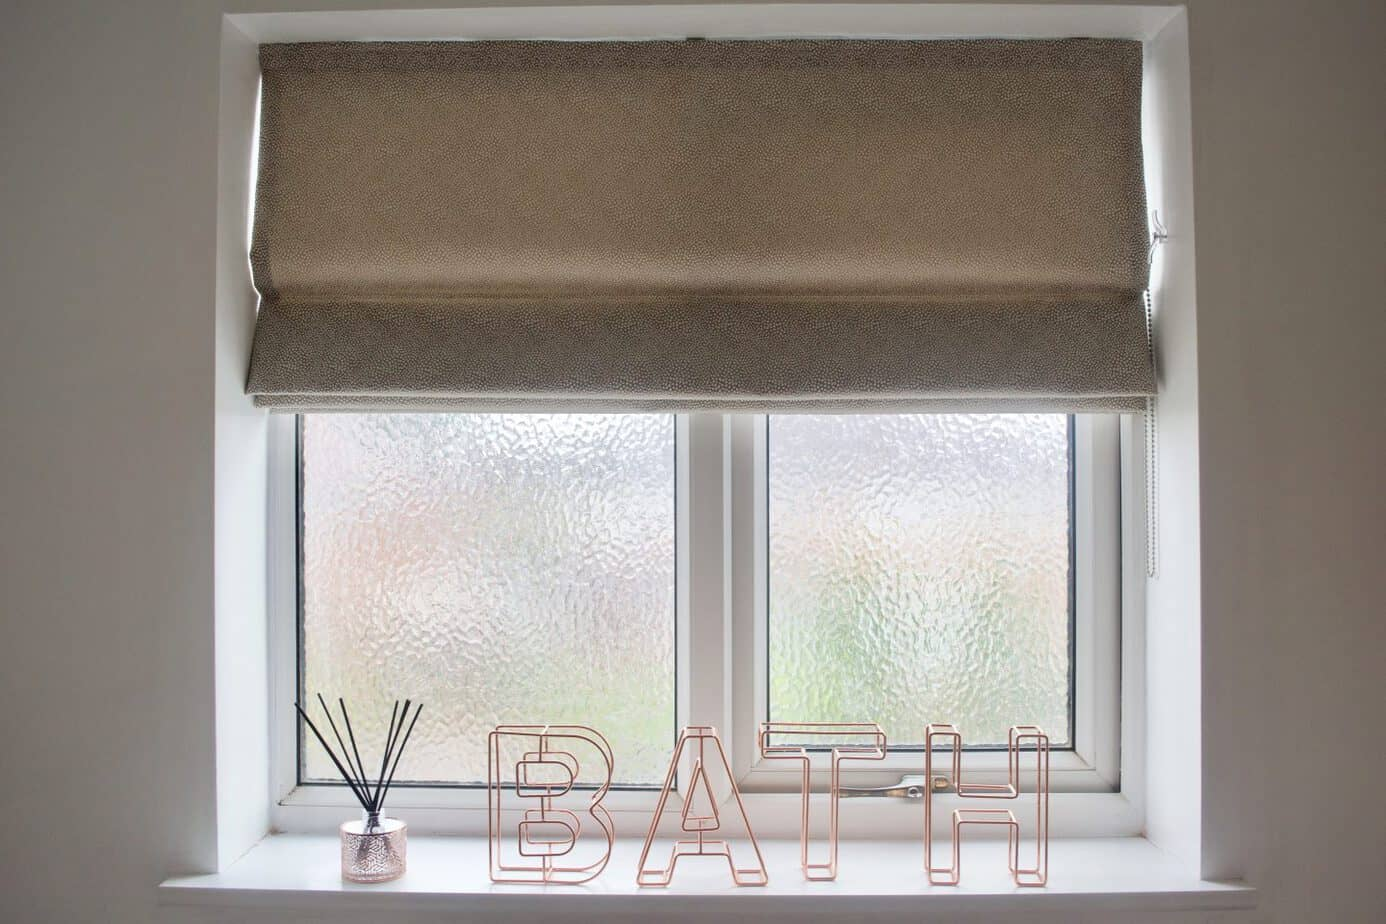 window in bathroom featuring a roller blind from make my blinds